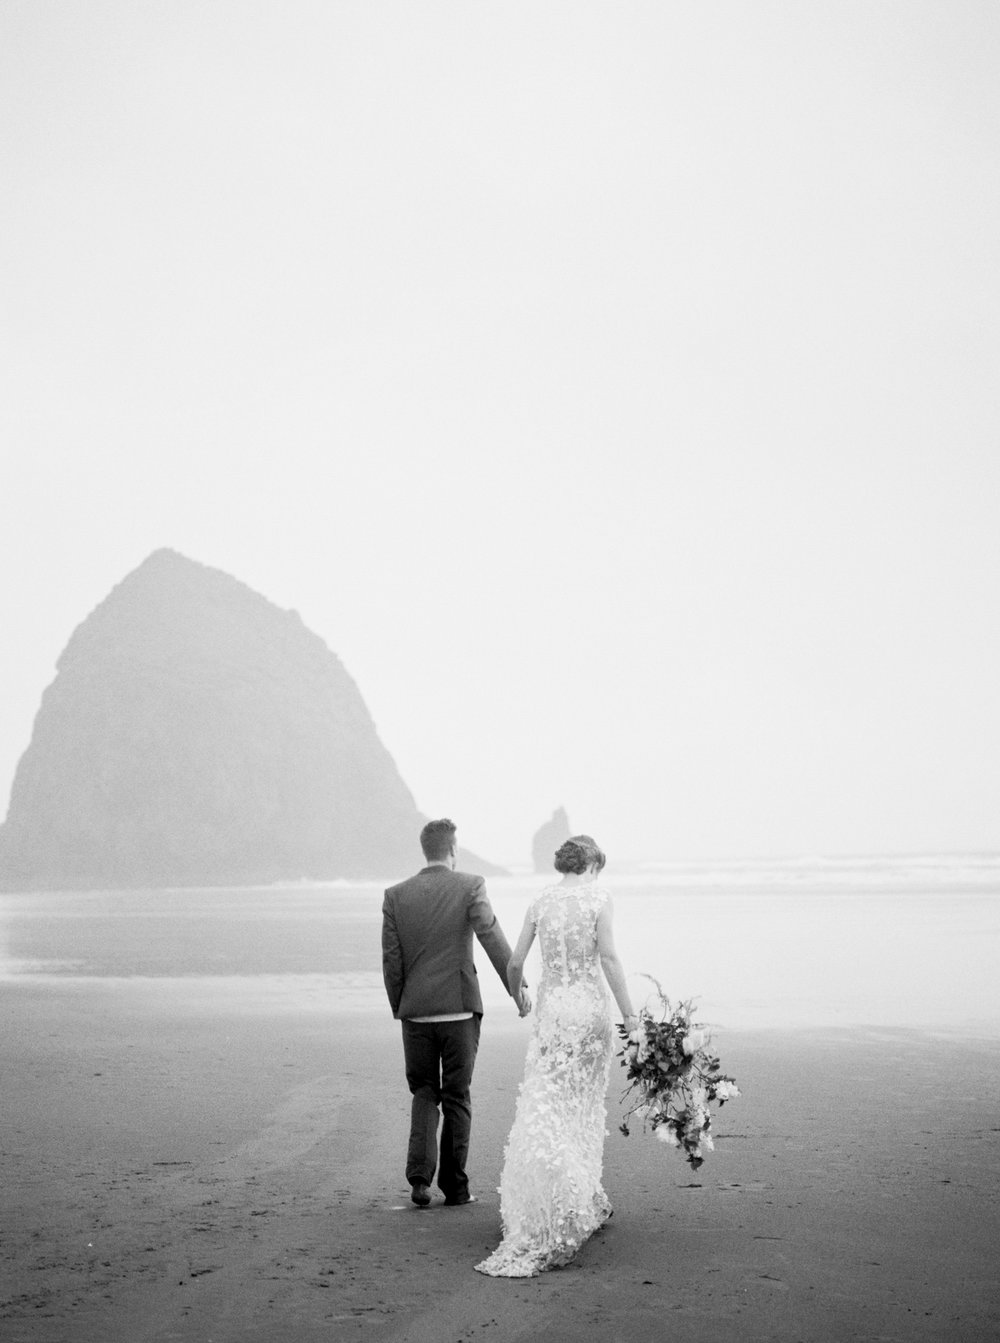 044@outlivecreative_cannon_beach_destination_wedding_photographer_&_videographer.jpg